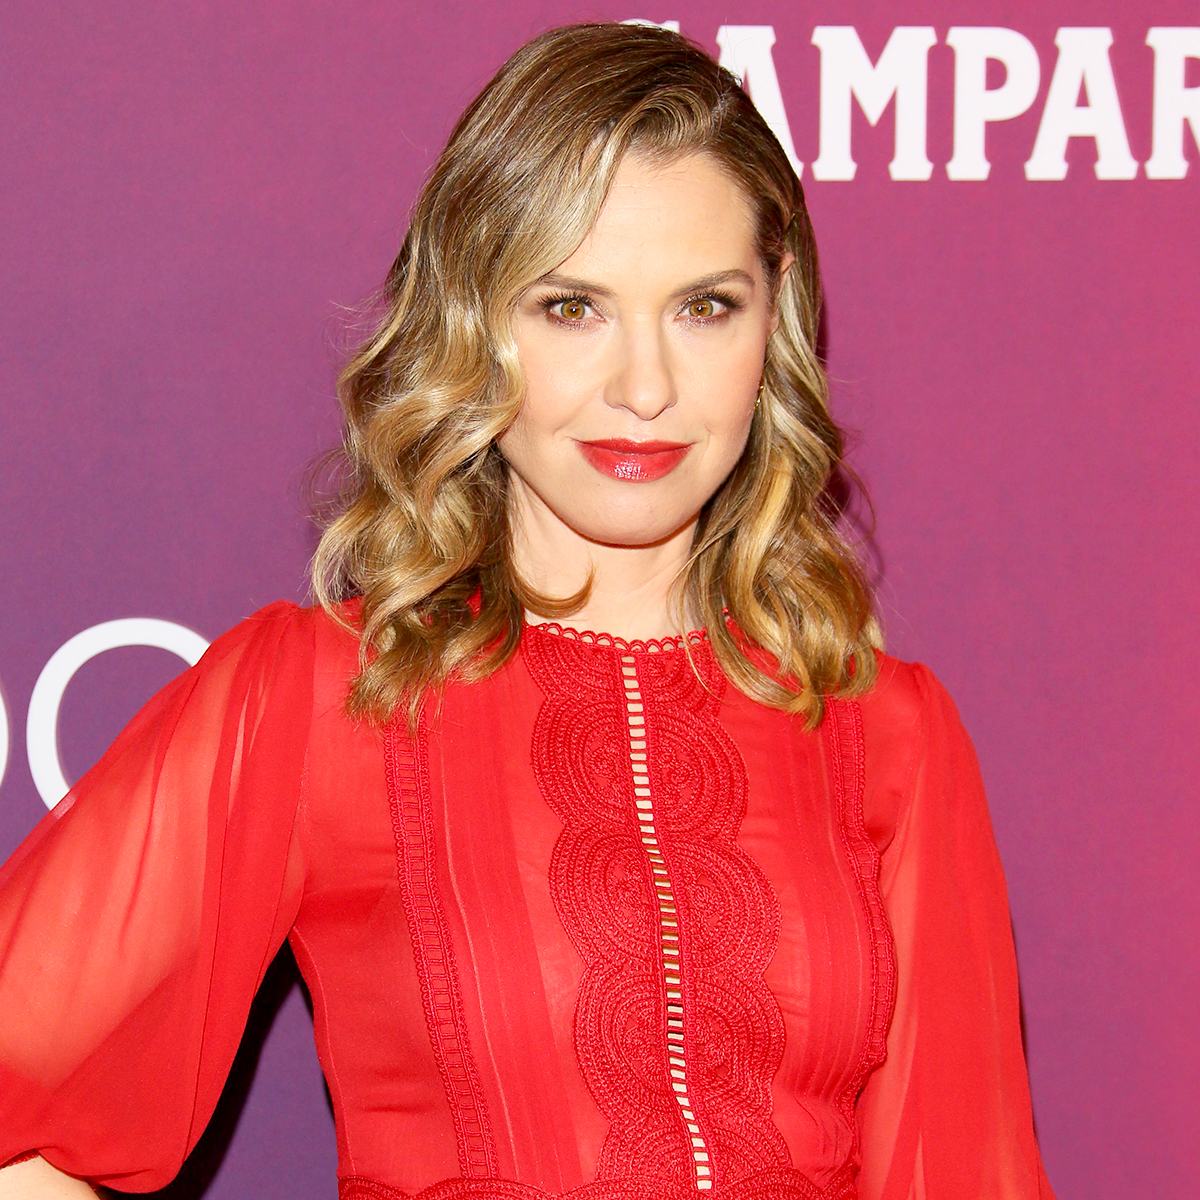 """Leslie-Grossman - """"Today is the day Randall is supposed to pay Fofty his money and I am a nervous wreck about it,"""" the American Horror Story actress tweeted on Monday."""